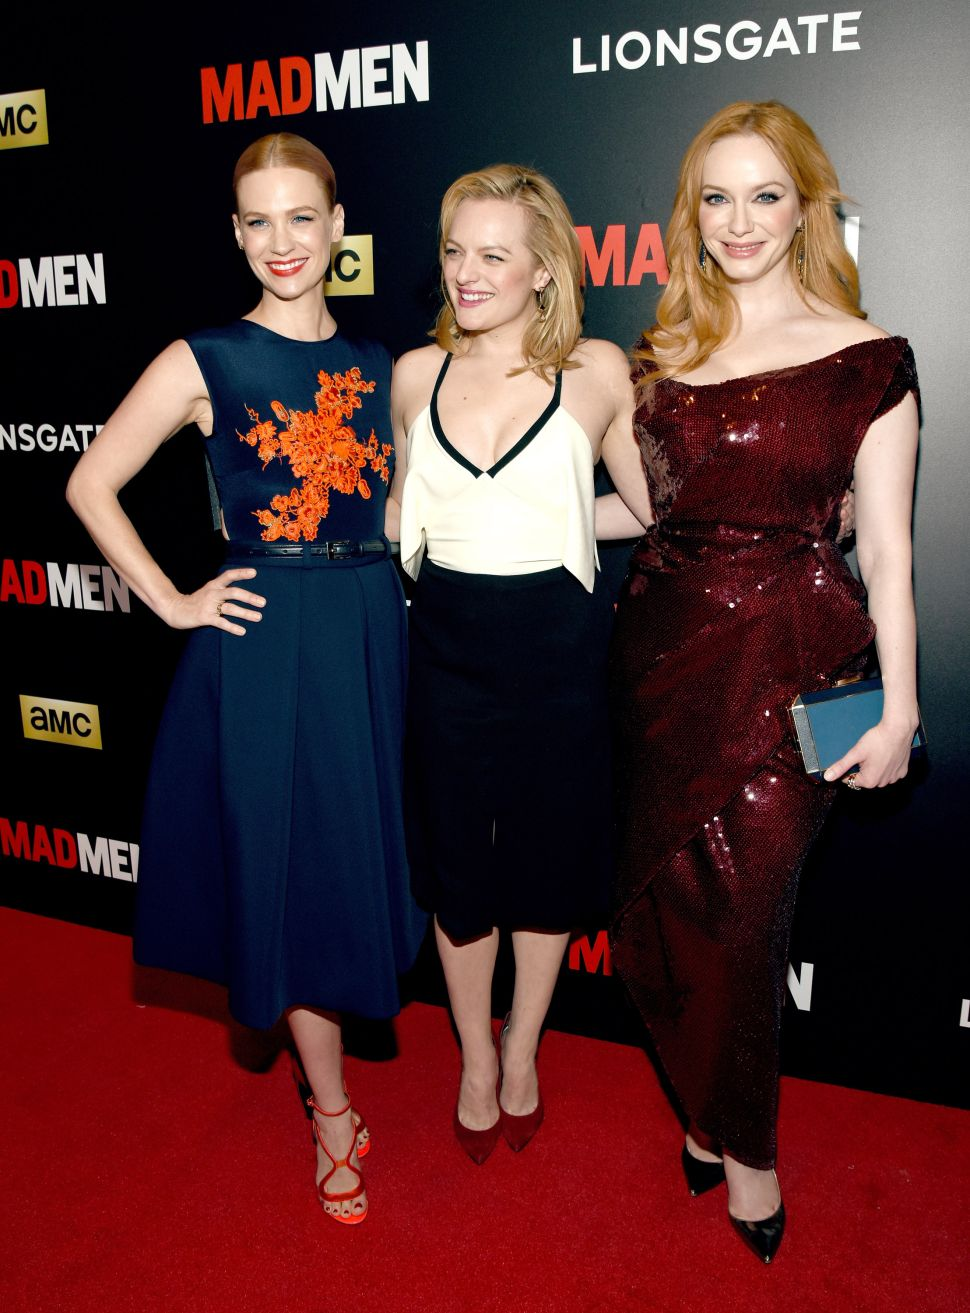 The Ladies of 'Mad Men' Begin Their Final Red Carpet Tour